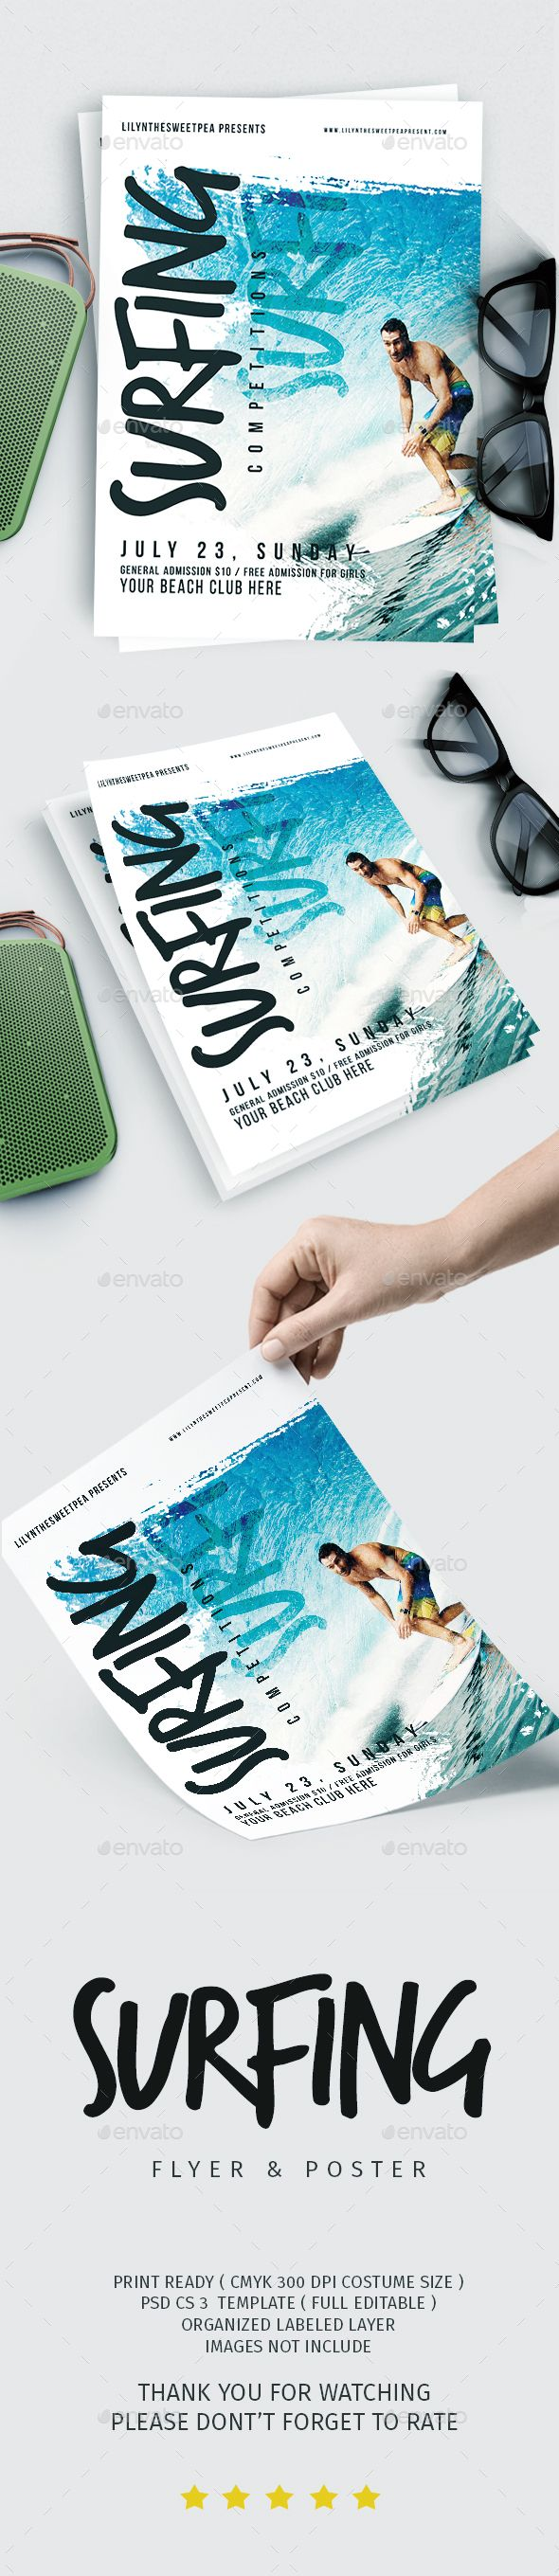 Surfing Competition #flyer & poster - #Events Flyers Download here: https://graphicriver.net/item/surfing-competition-flyer-poster/20181089?ref=alena994